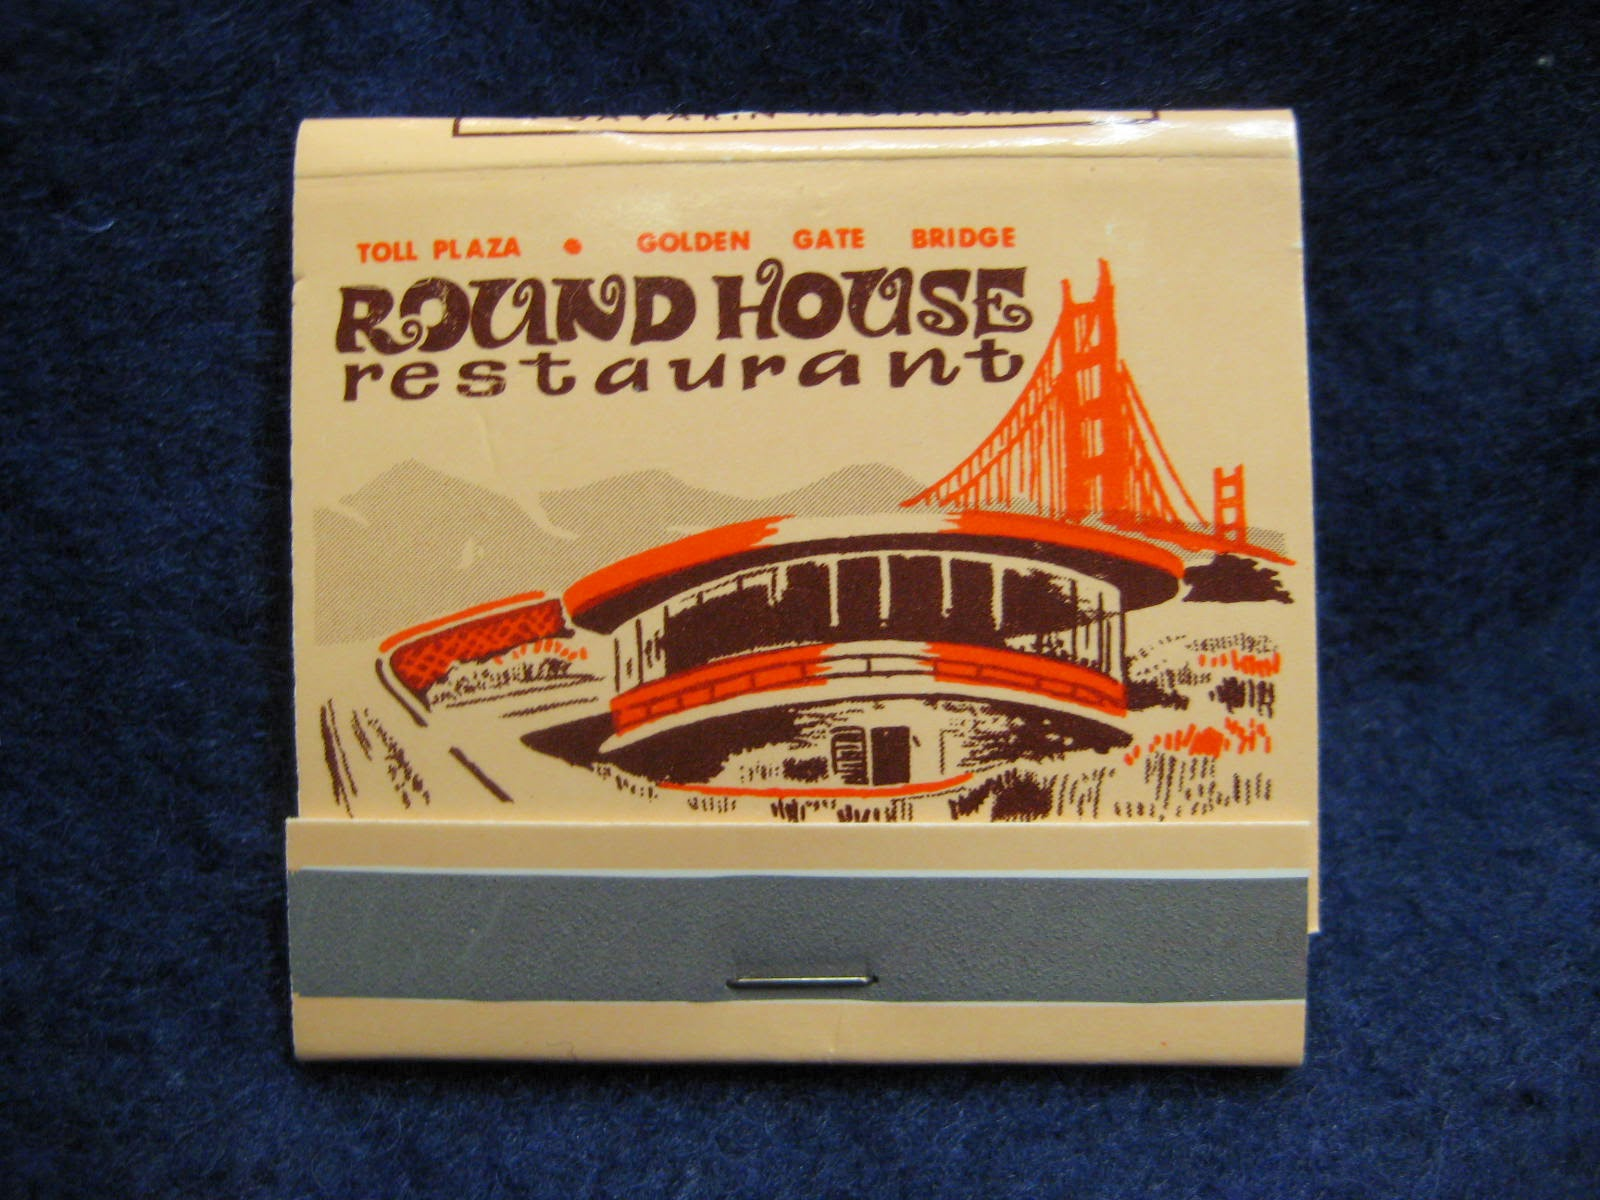 Matchbook from Roundhouse Restaurant, San Francisco History Center, San Francisco Public Library